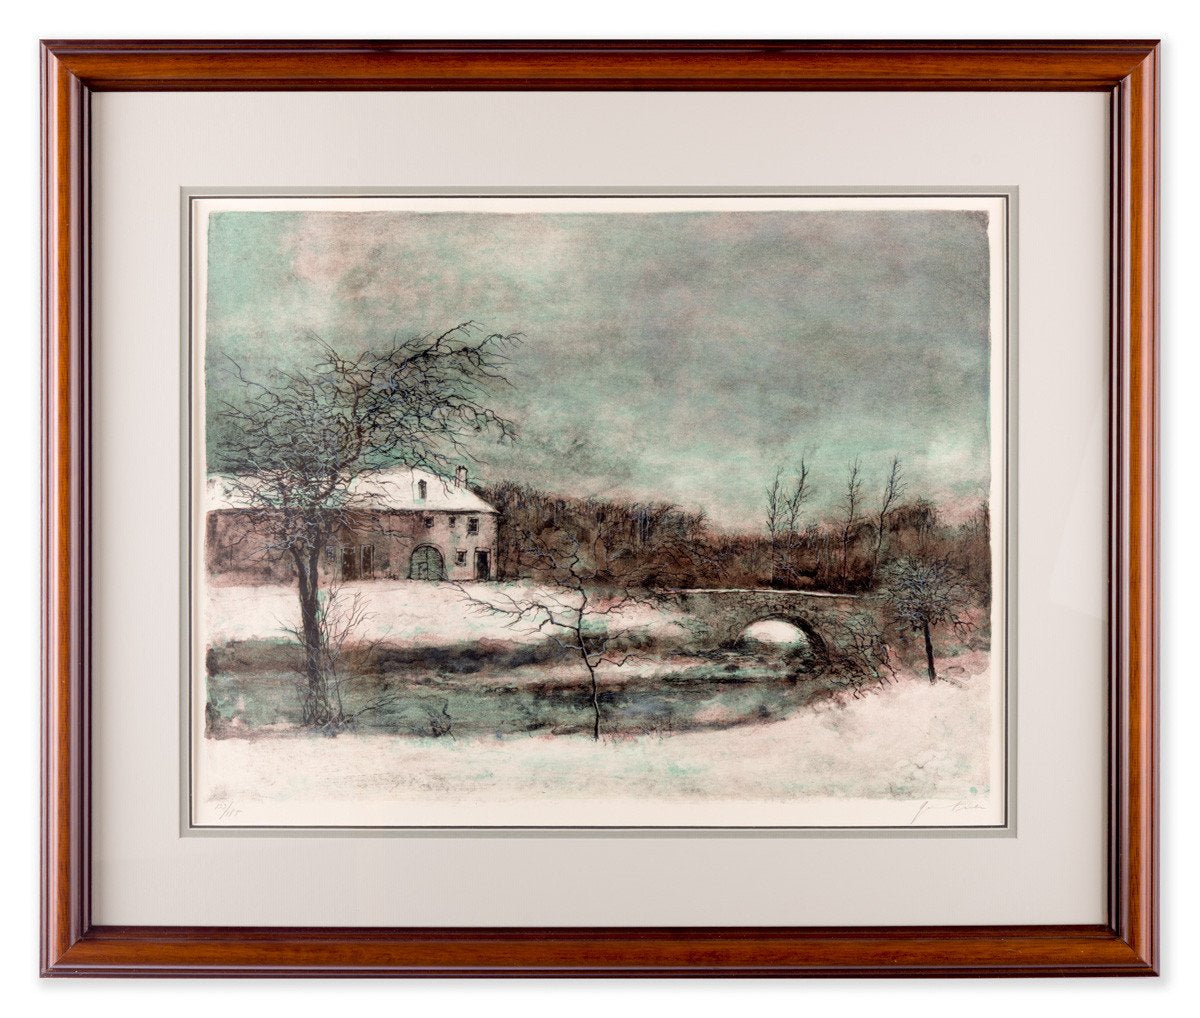 Fonte Des Neiges - by Bernard Ganter - Lithograph - Framed Art